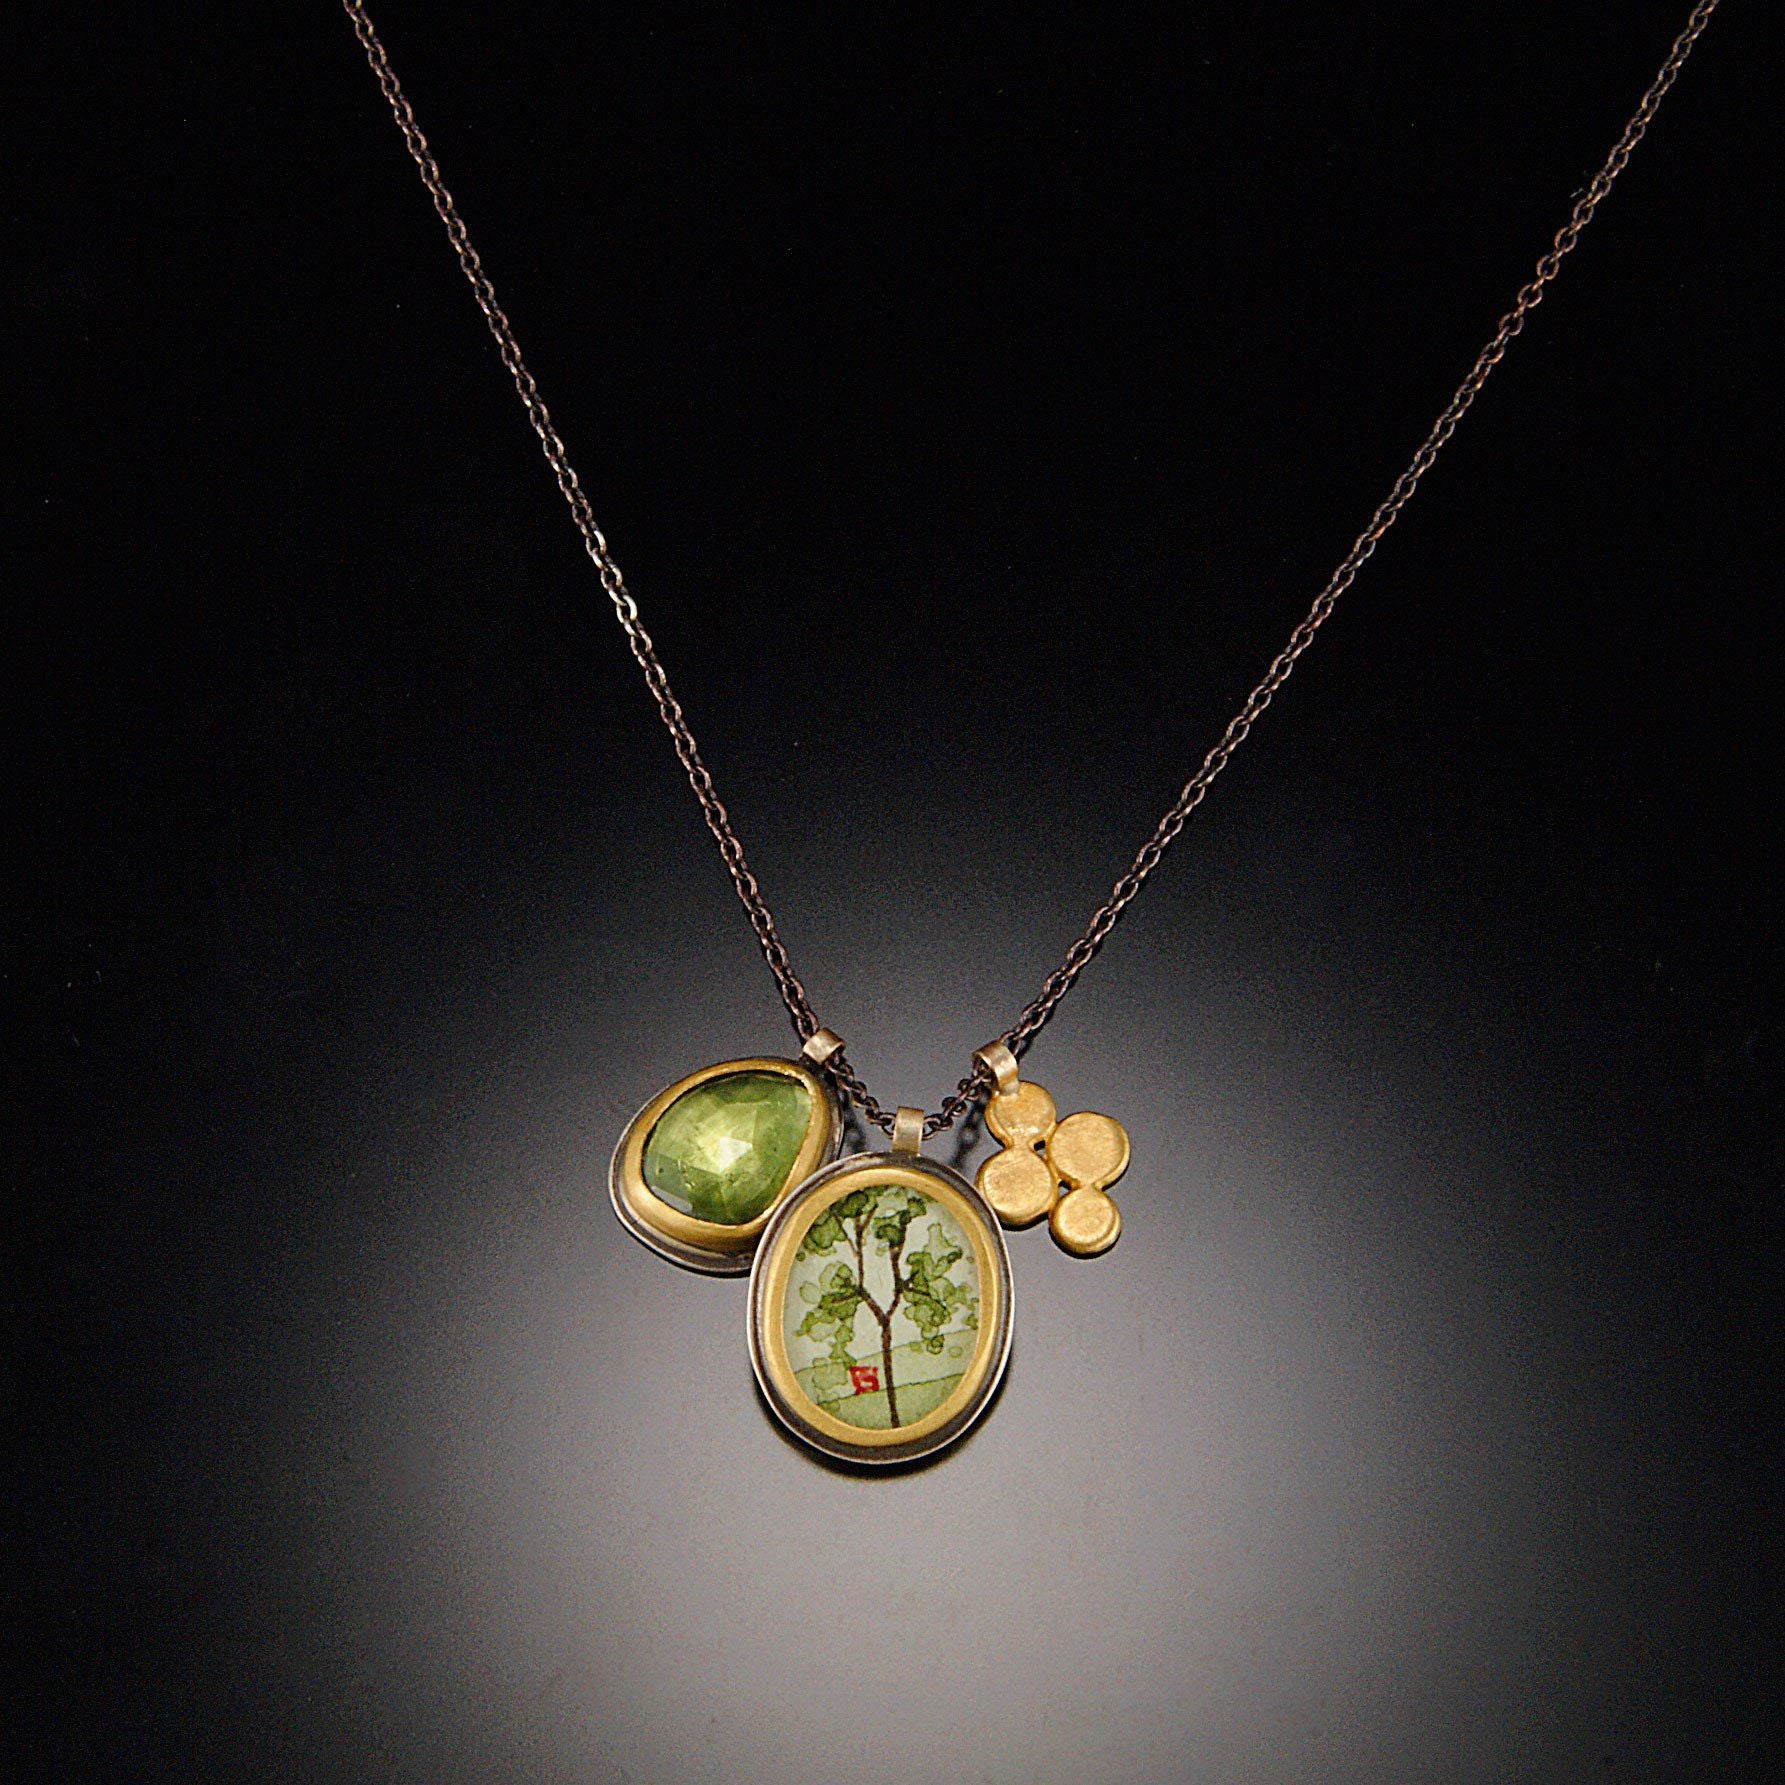 Spring Maple Charm necklace with Vesuvianite